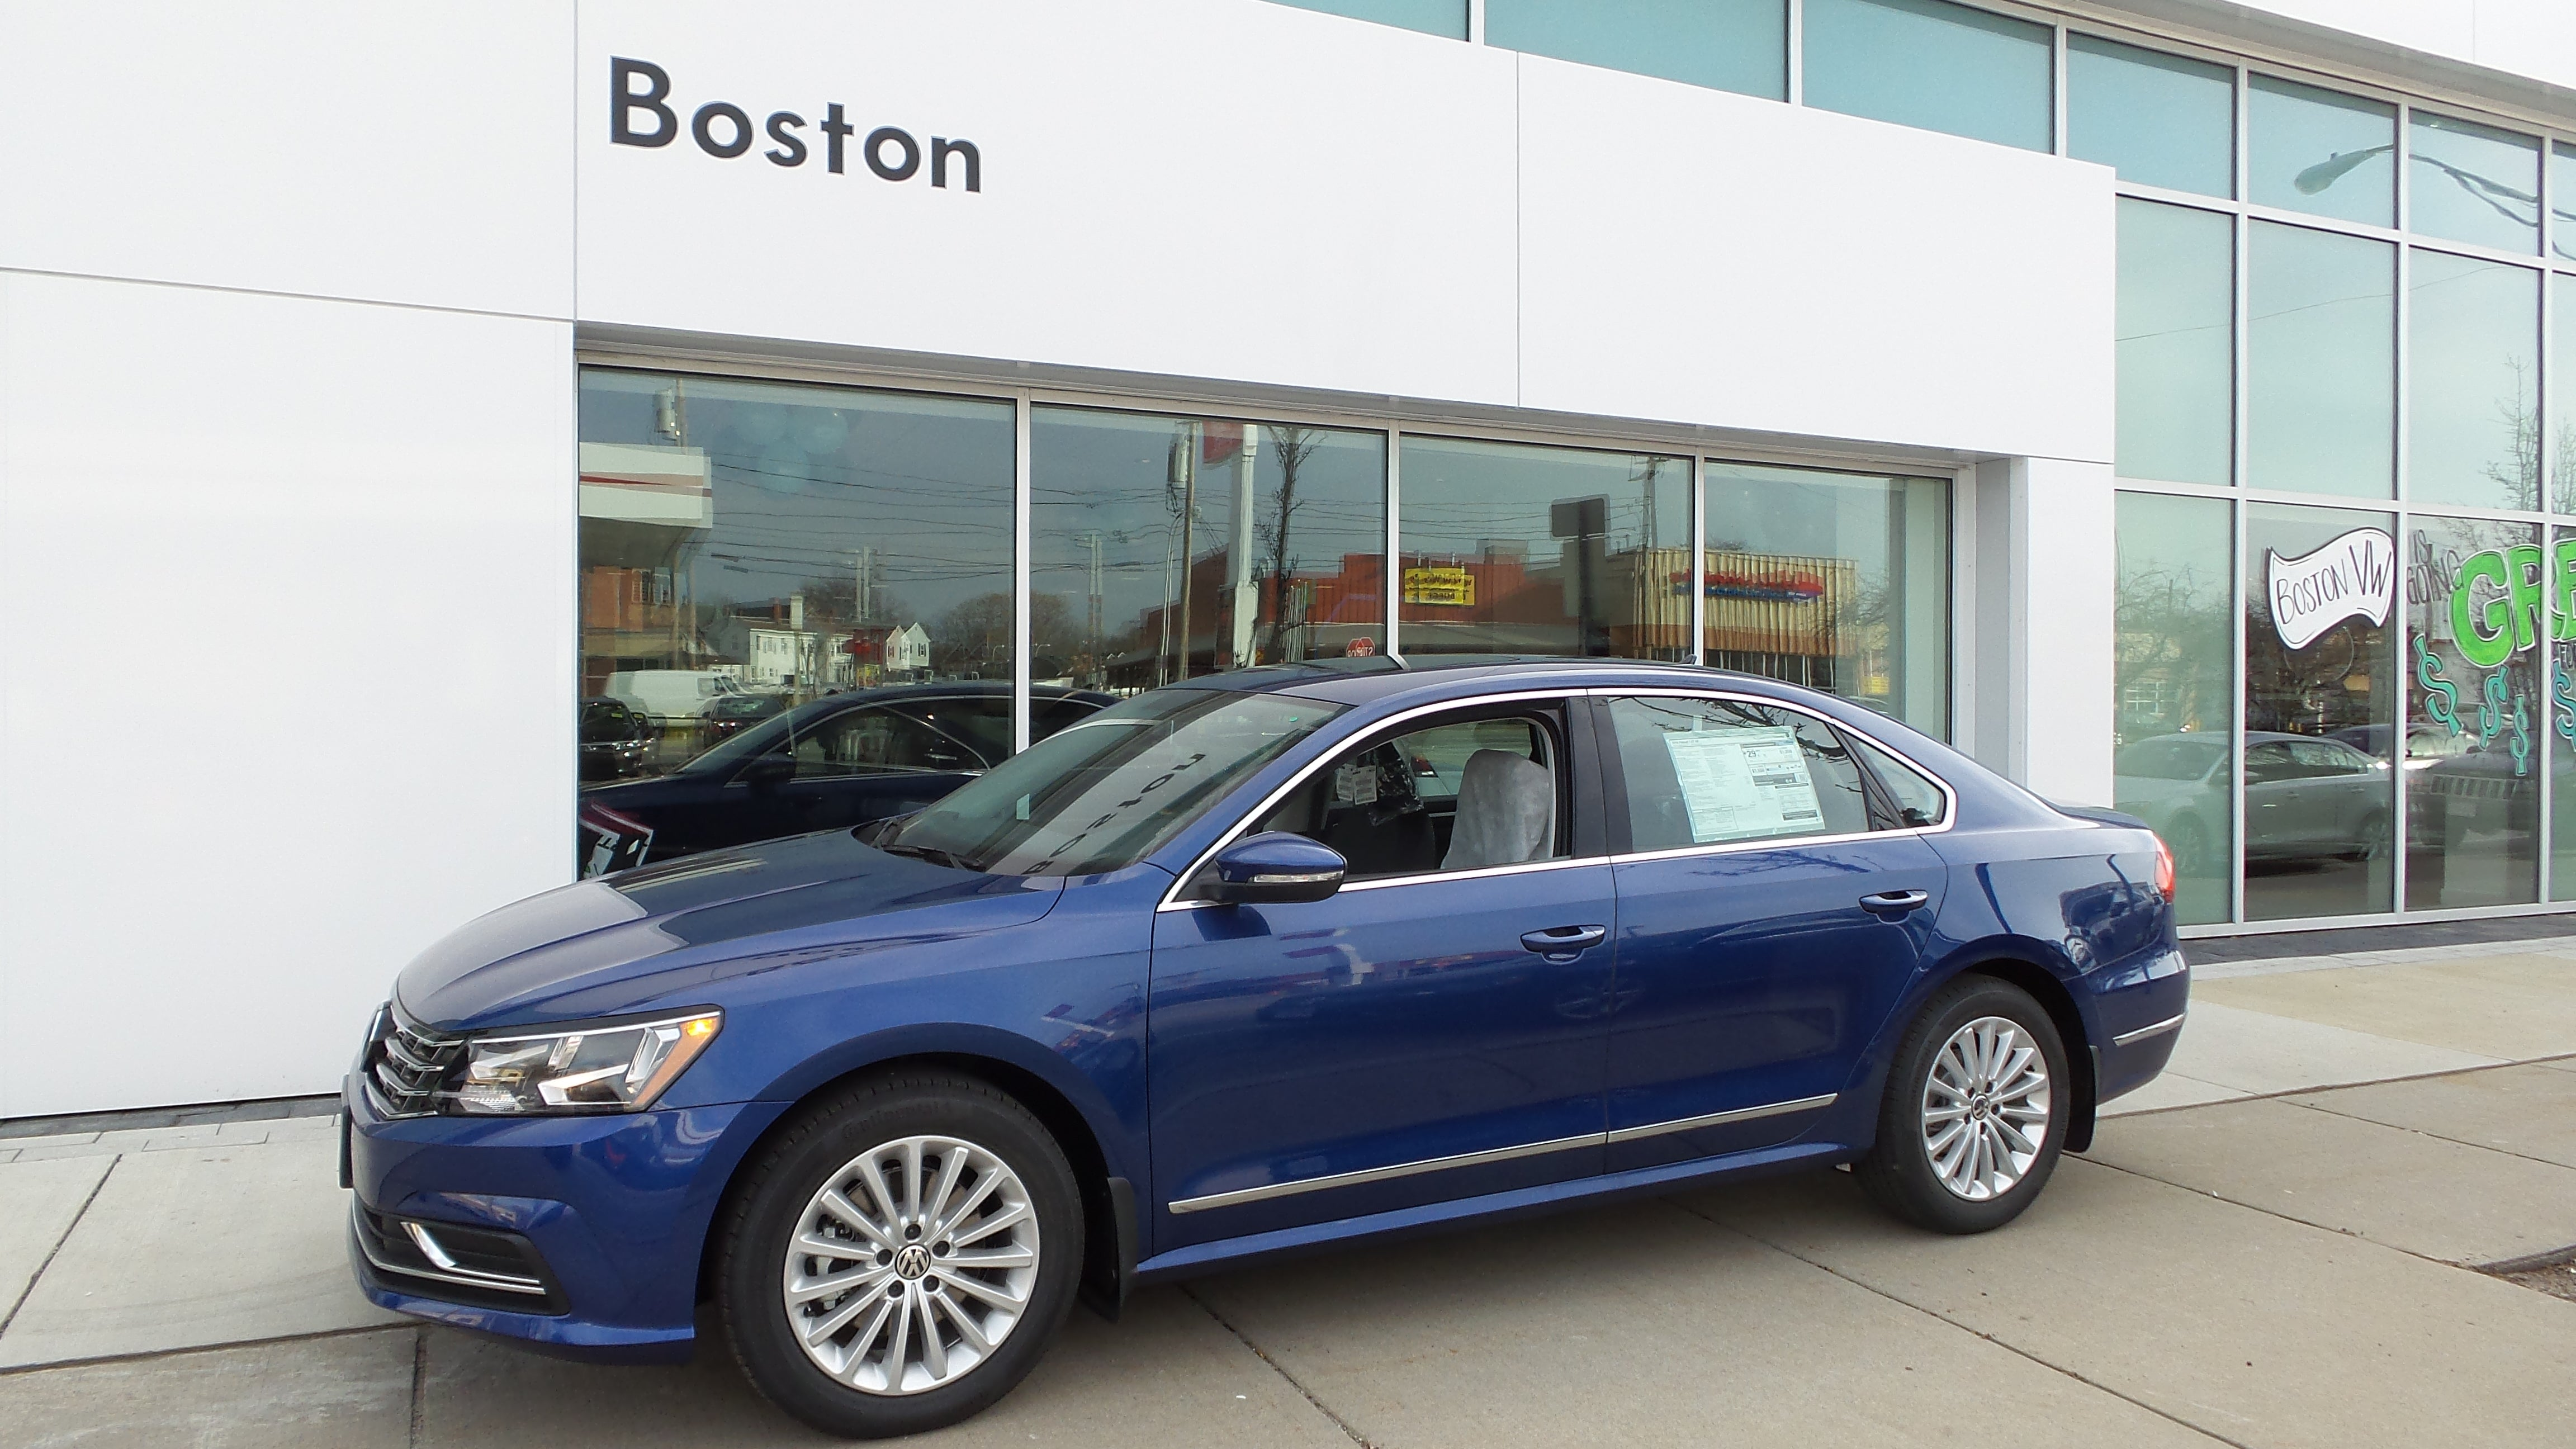 Used Car Specials | Boston Volkswagen Specials Watertown, MA